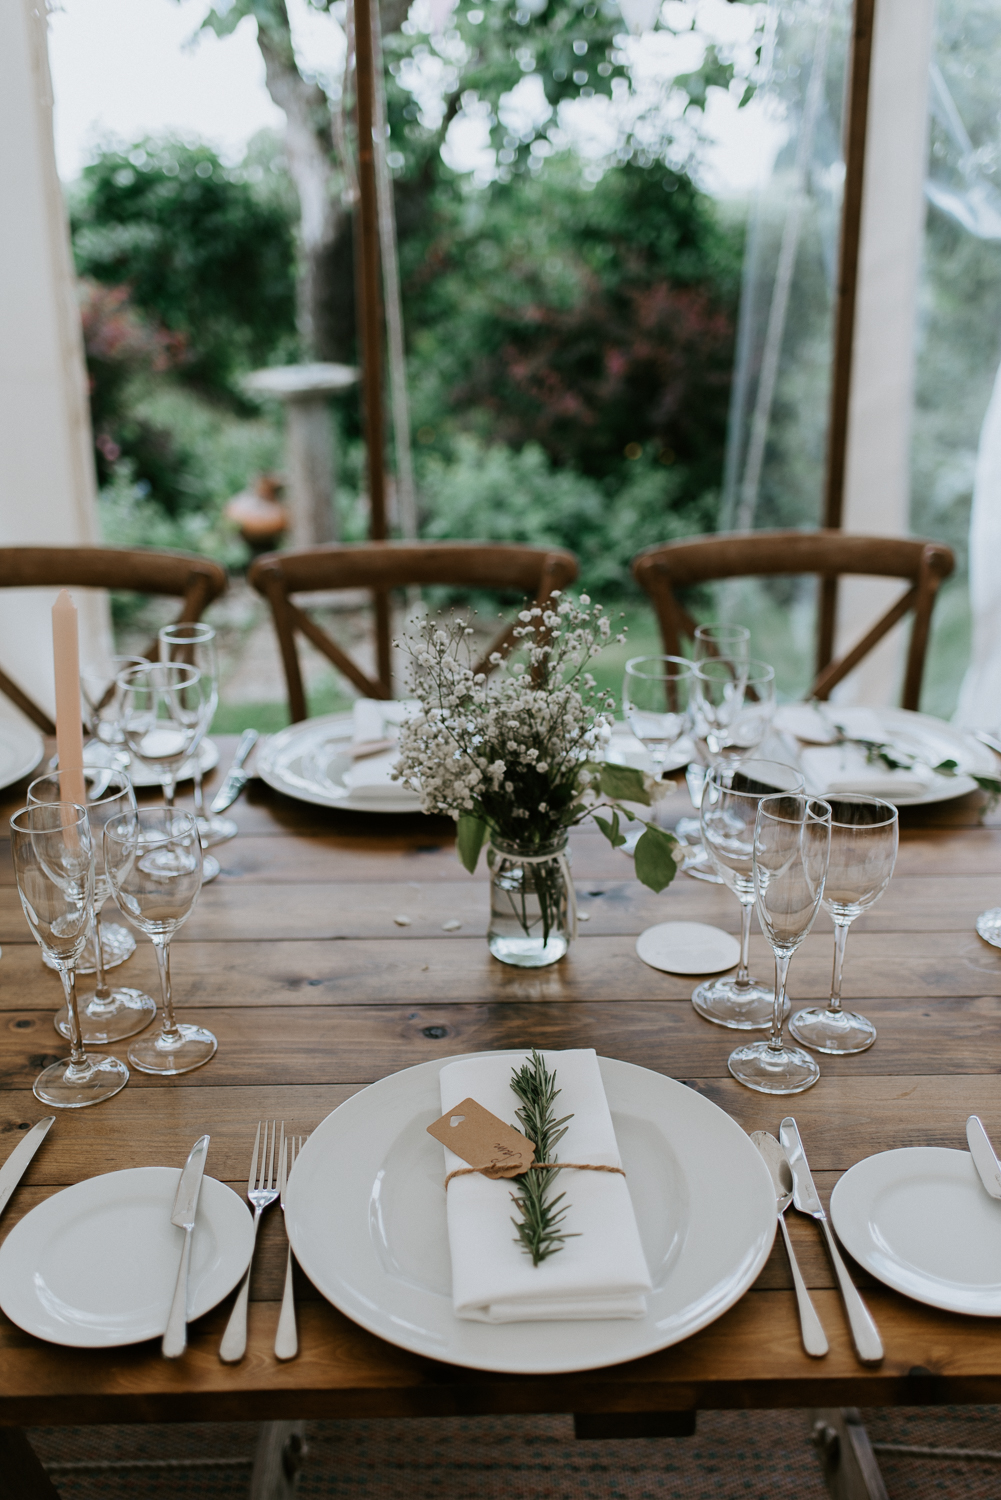 Rustic chic table setting with a twig of thyme, wooden table and picked field flowers. These to had an intimate wedding celebration in rural Warwickshire.